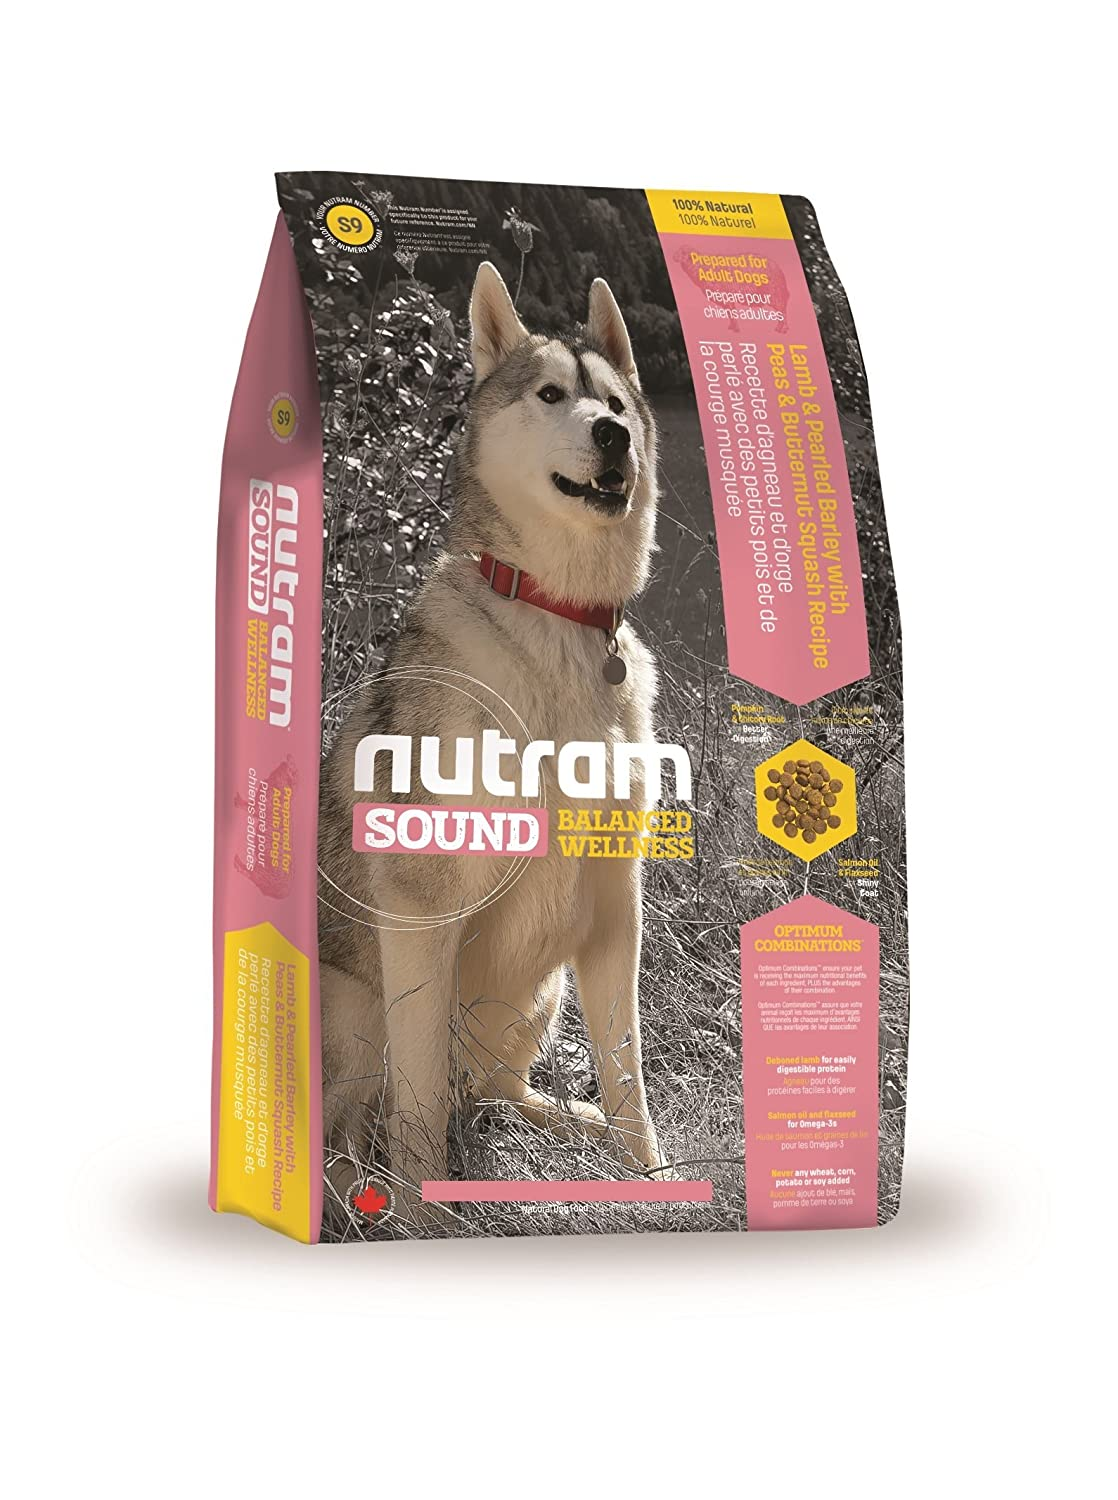 Nutram Complete Dry Adult Dog Food Lamb Barley Peas and Butternut Squash, 13.6 kg